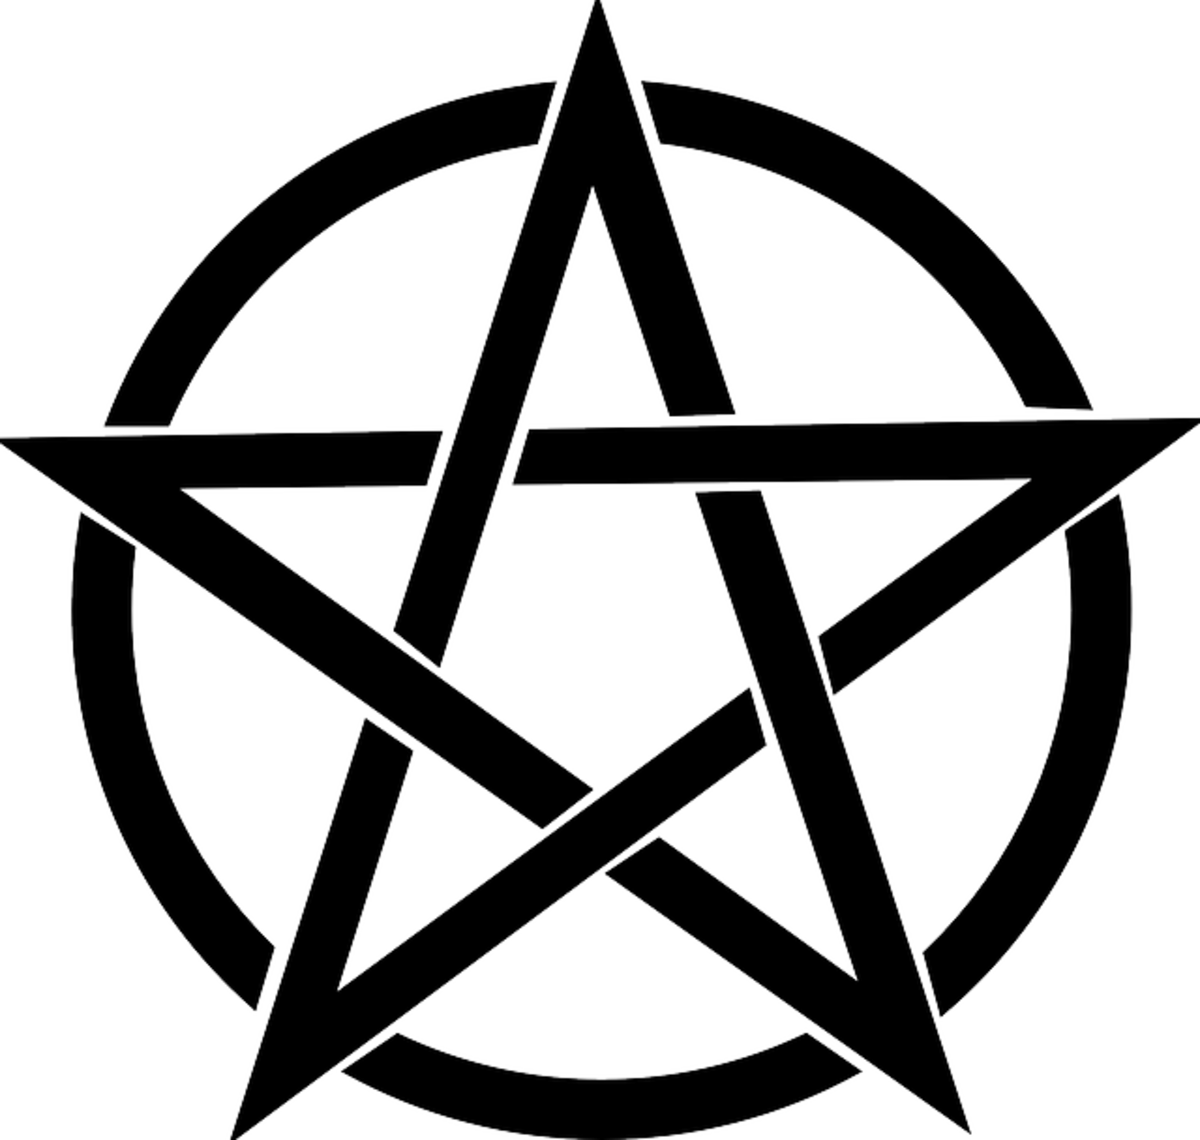 First Lesson in Wicca: What Wicca Is, and What Wicca Isn't